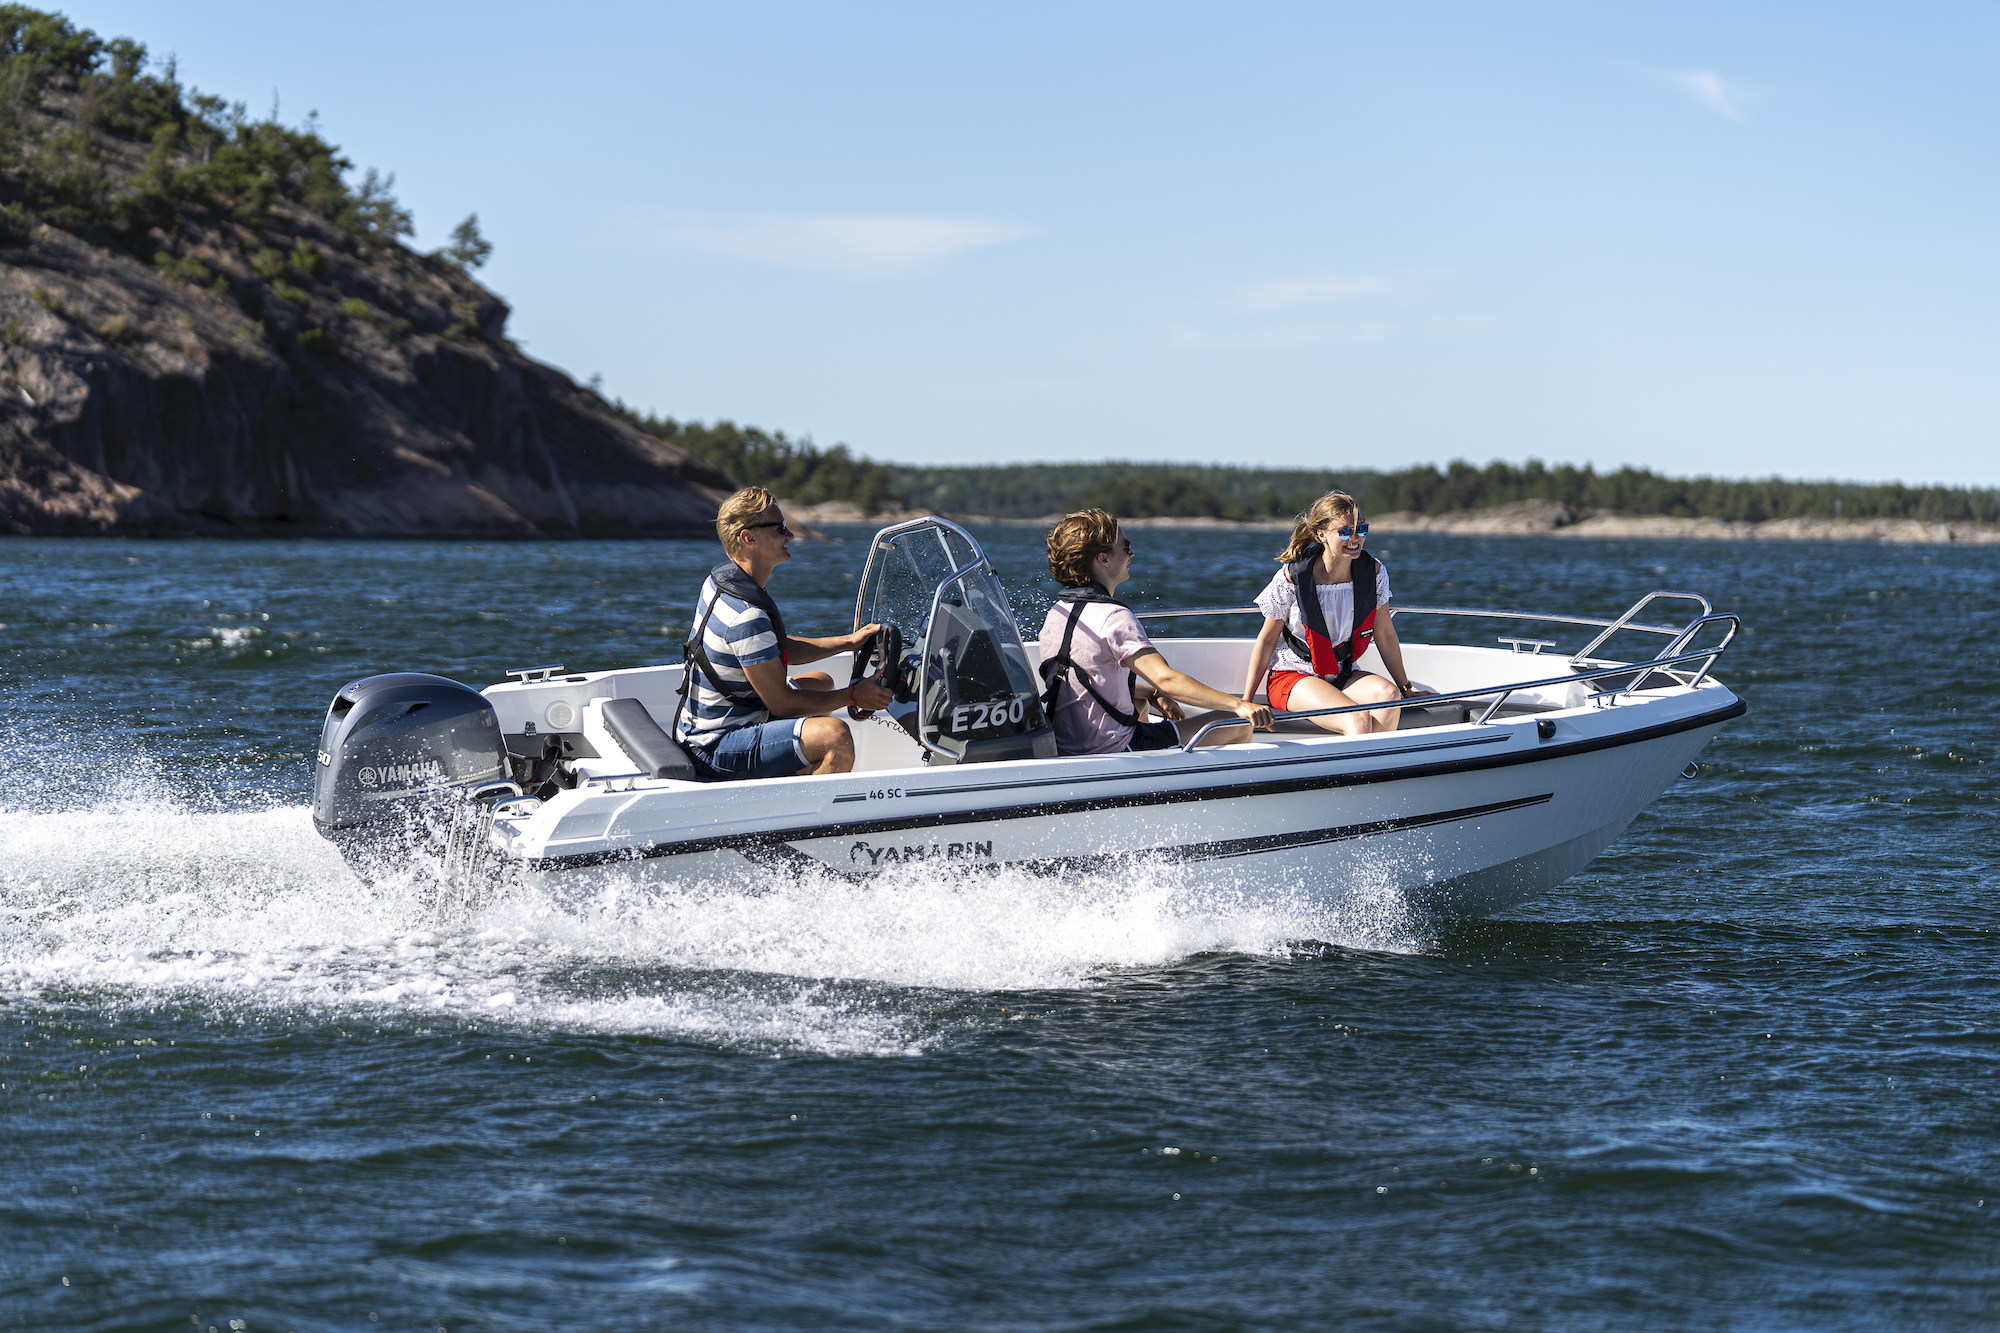 Yamarin 46 SC will be displayed at the Tallinn Boat Show - Meremess 20